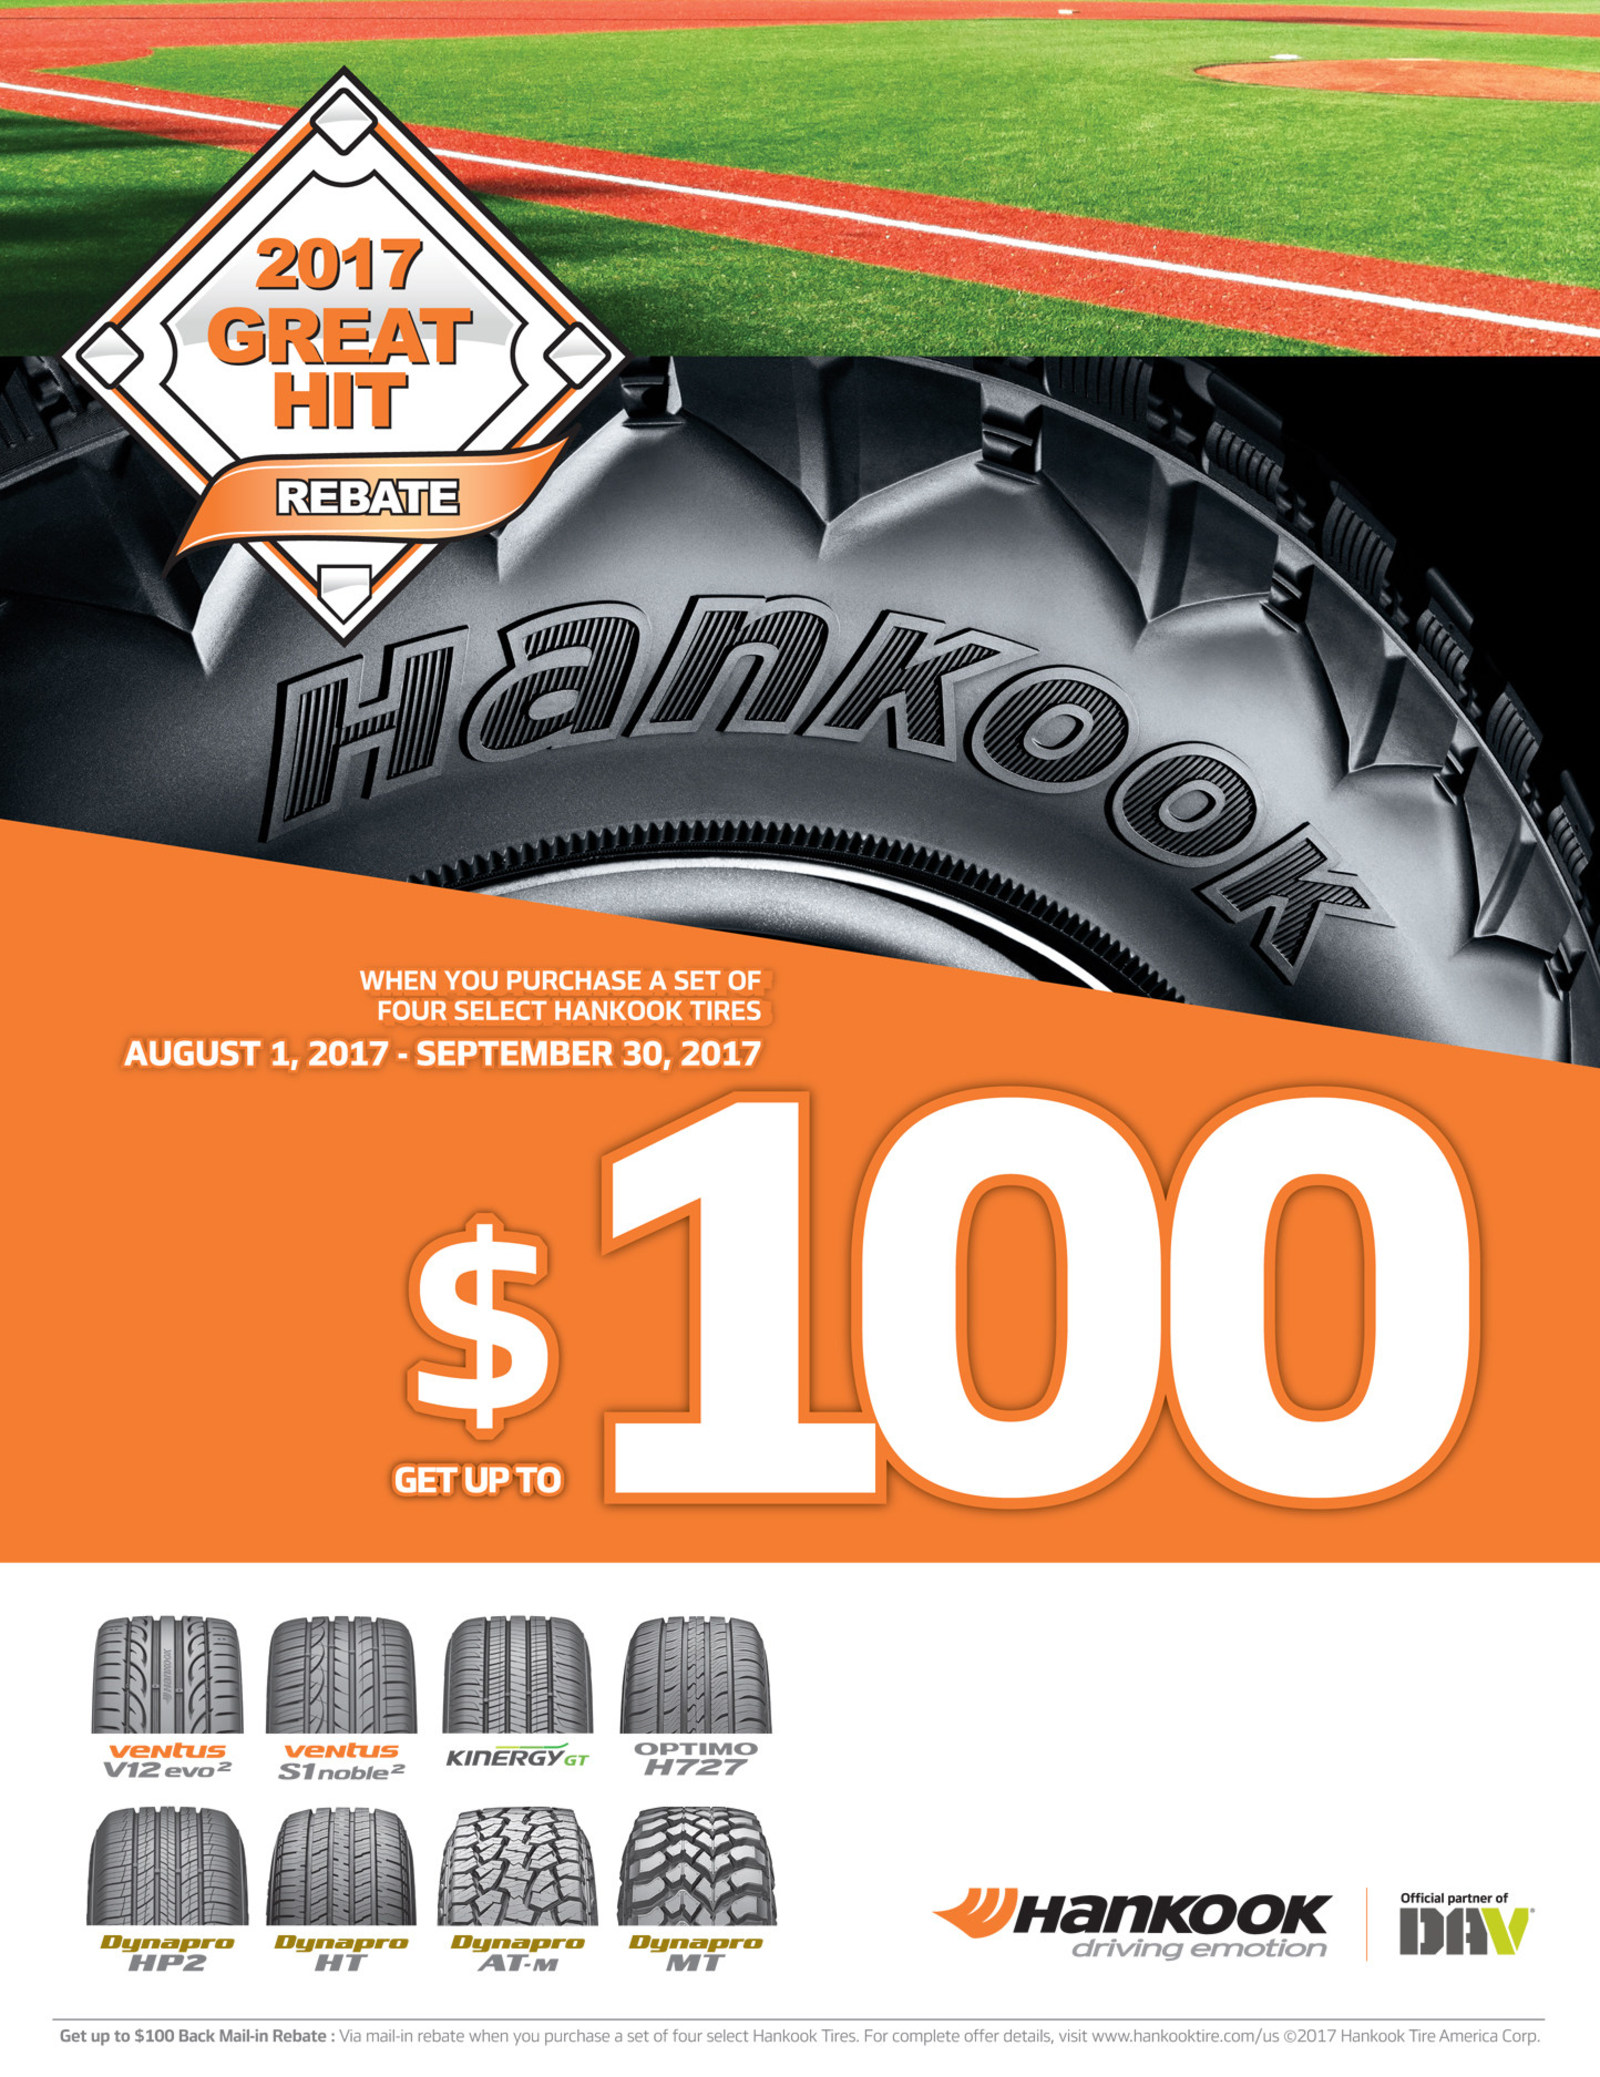 With Hankook Tire's Great Hit Rebate, consumers can save up to $100 on eight of Hankook's most popular passenger and light truck tire models. (PRNewsfoto/Hankook Tire America Corp.)